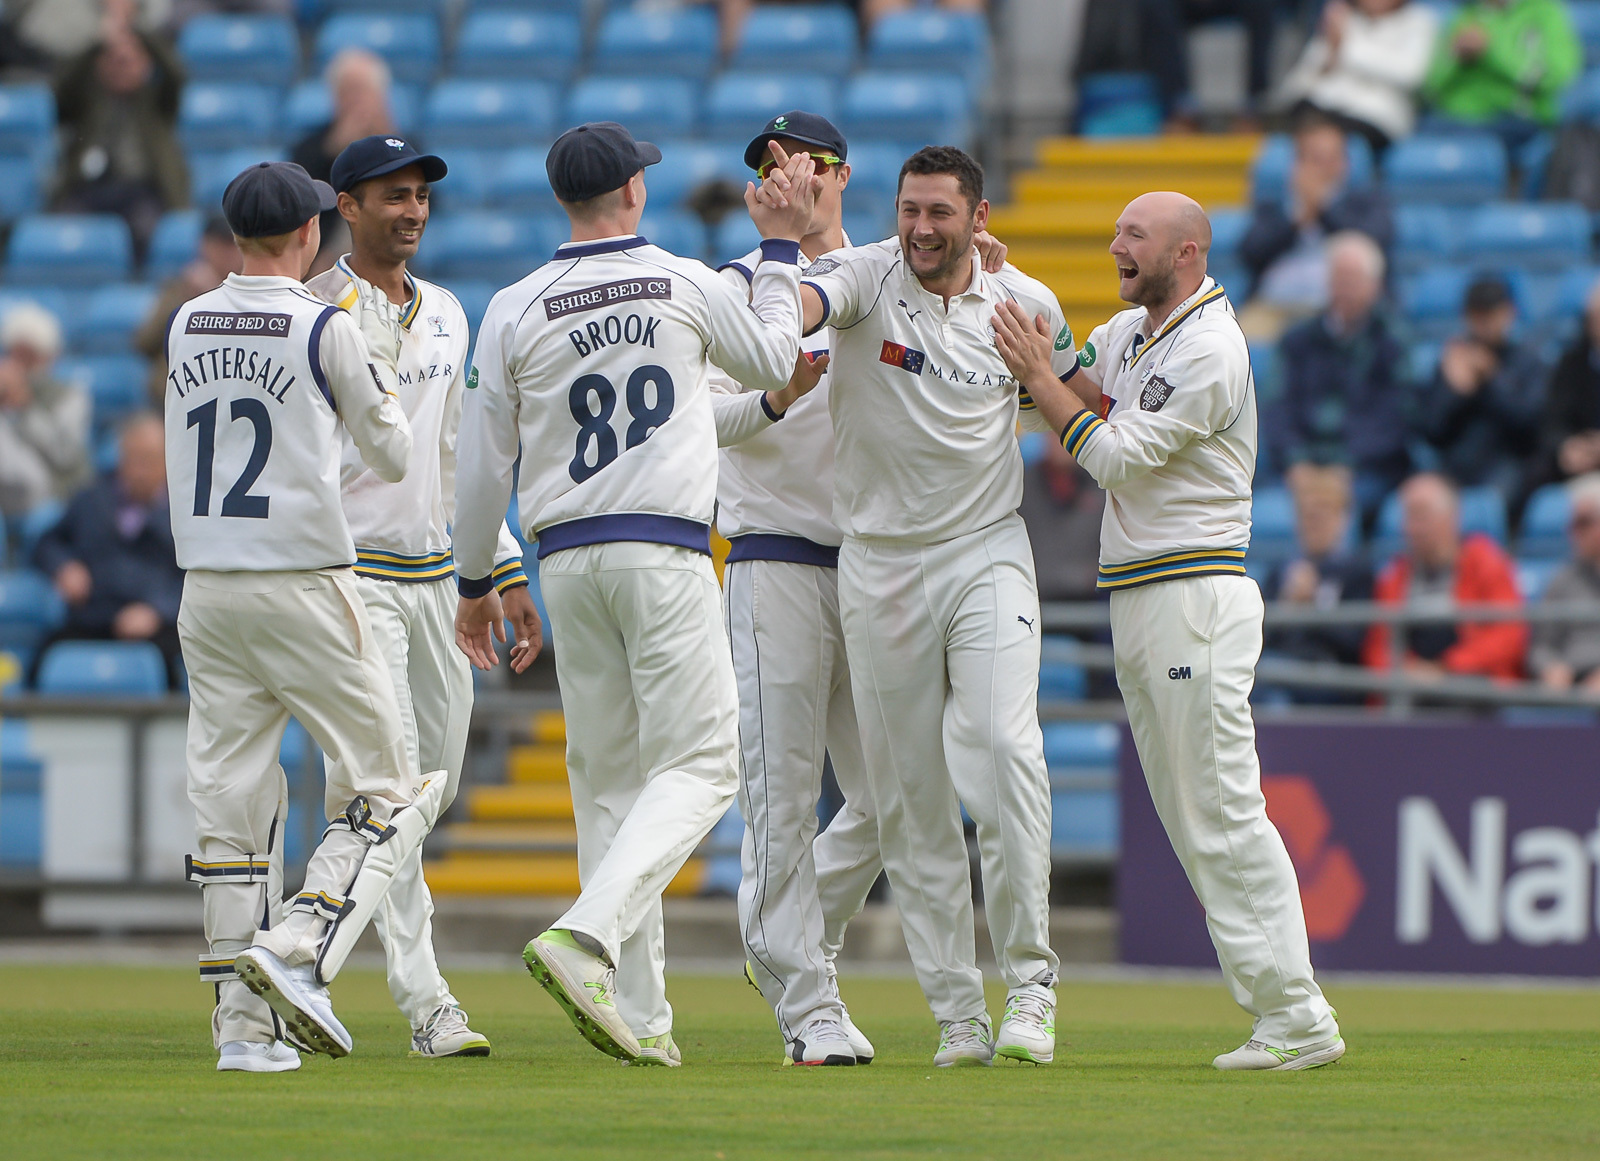 Tim Bresnan, second from right, produced a fine spell in his first Championship appearance of the season  Picture: RAY SPENCER